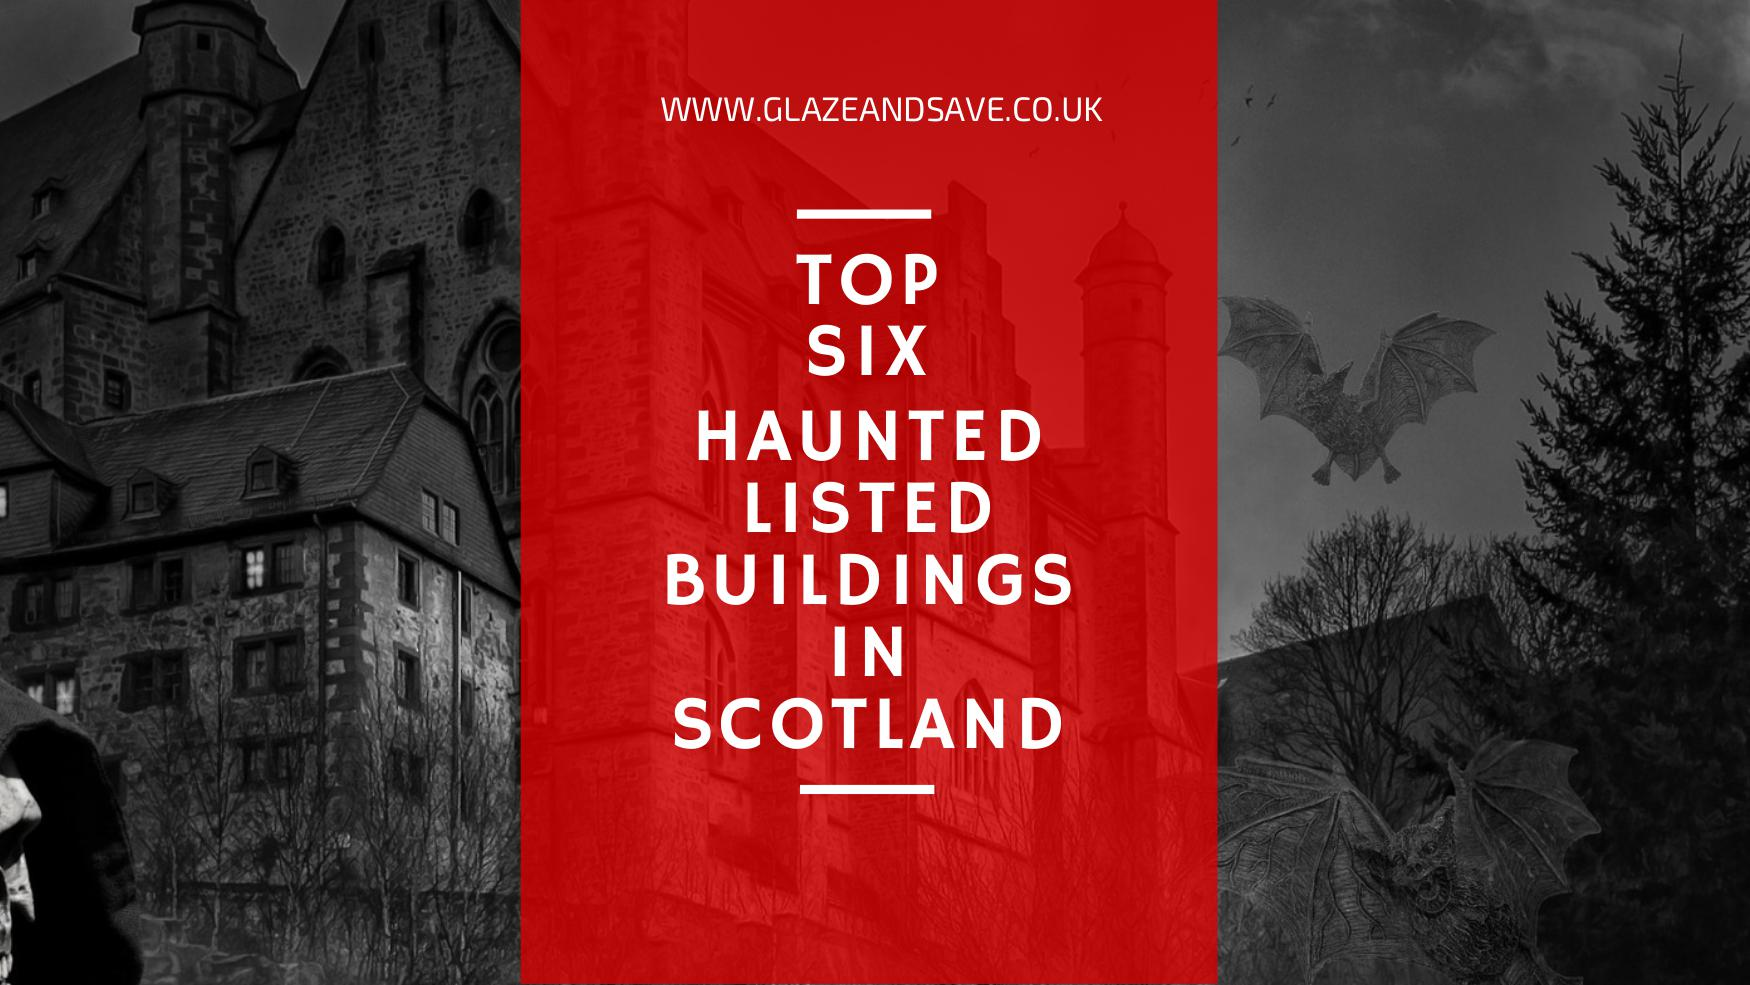 Top Six haunted listed buildings in Scotland by Glaze & Save bespoke magnetic secondary glazing and draught proofing specialising in listed buildings, conservation areas and original windows.